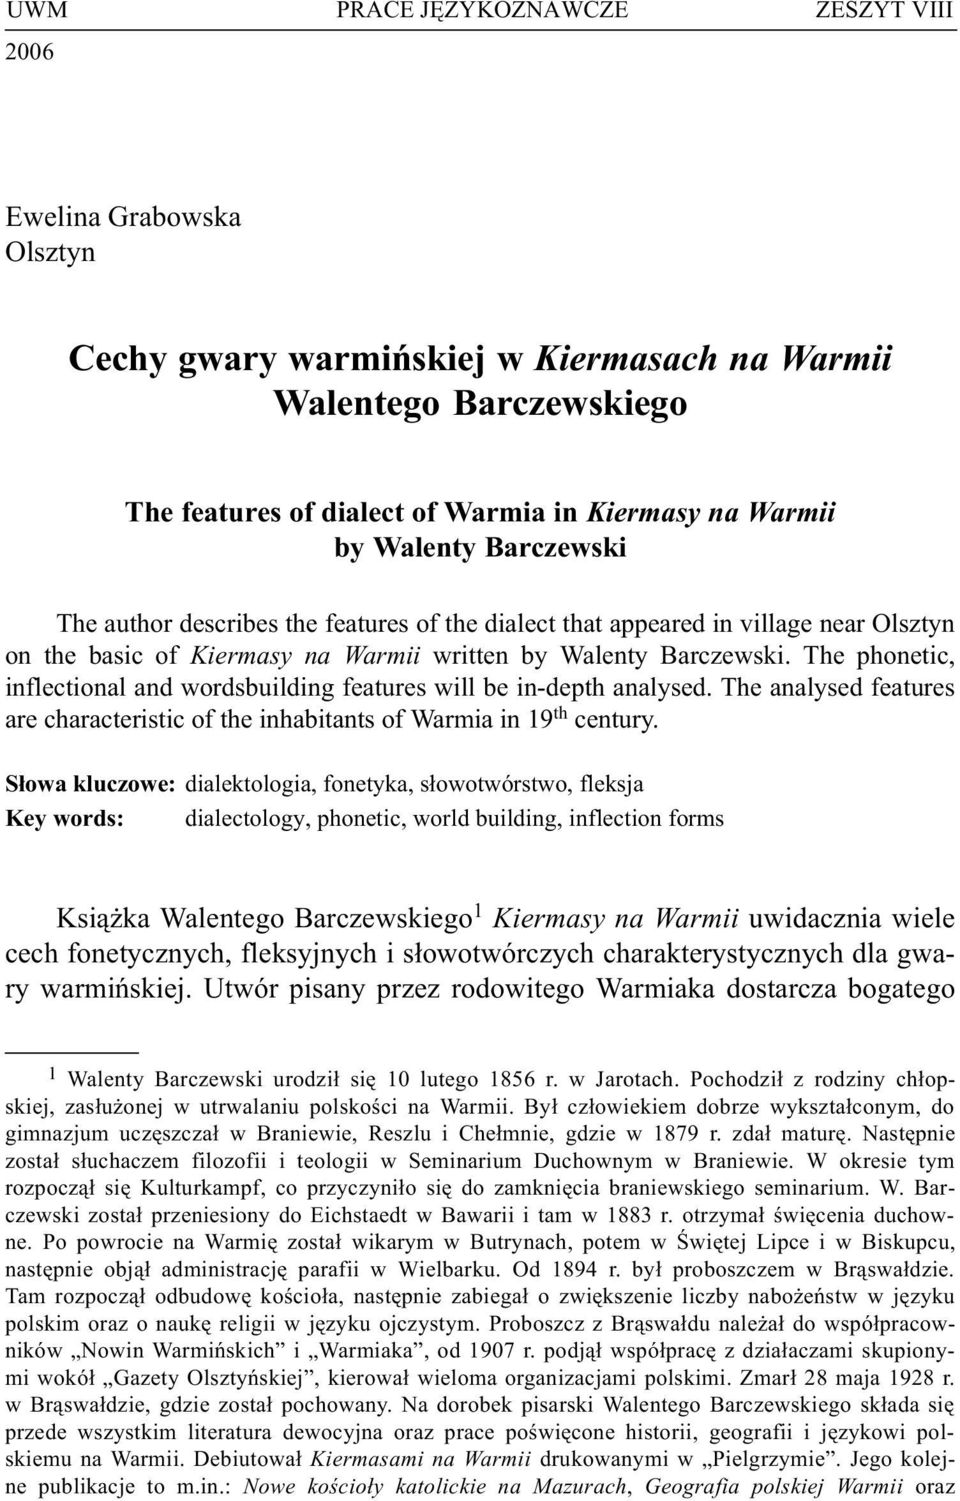 The author describes the features of the dialect that appeared in village near Olsztyn on the basic of Kiermasy na Warmii written by Walenty Barczewski.